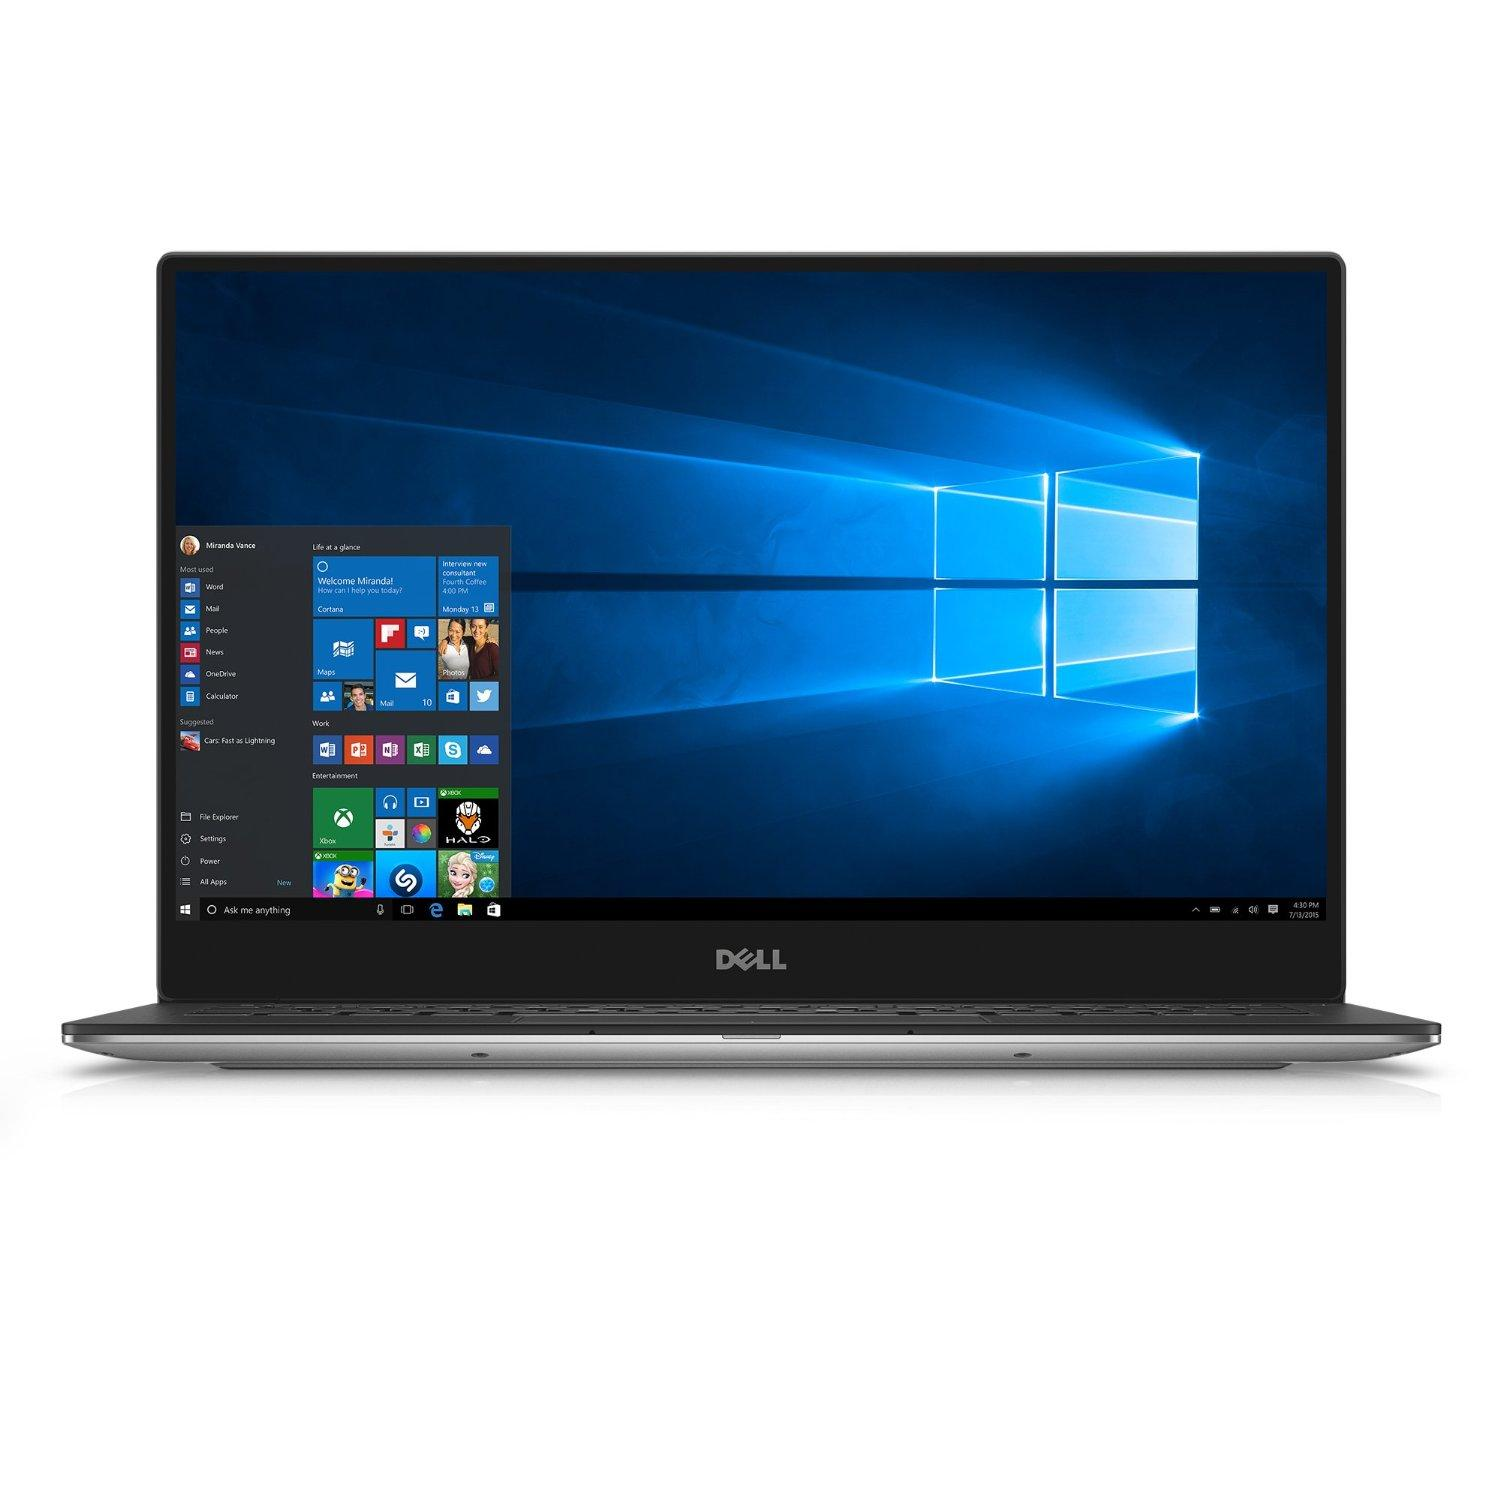 Dell XPS 13 9350 13.3